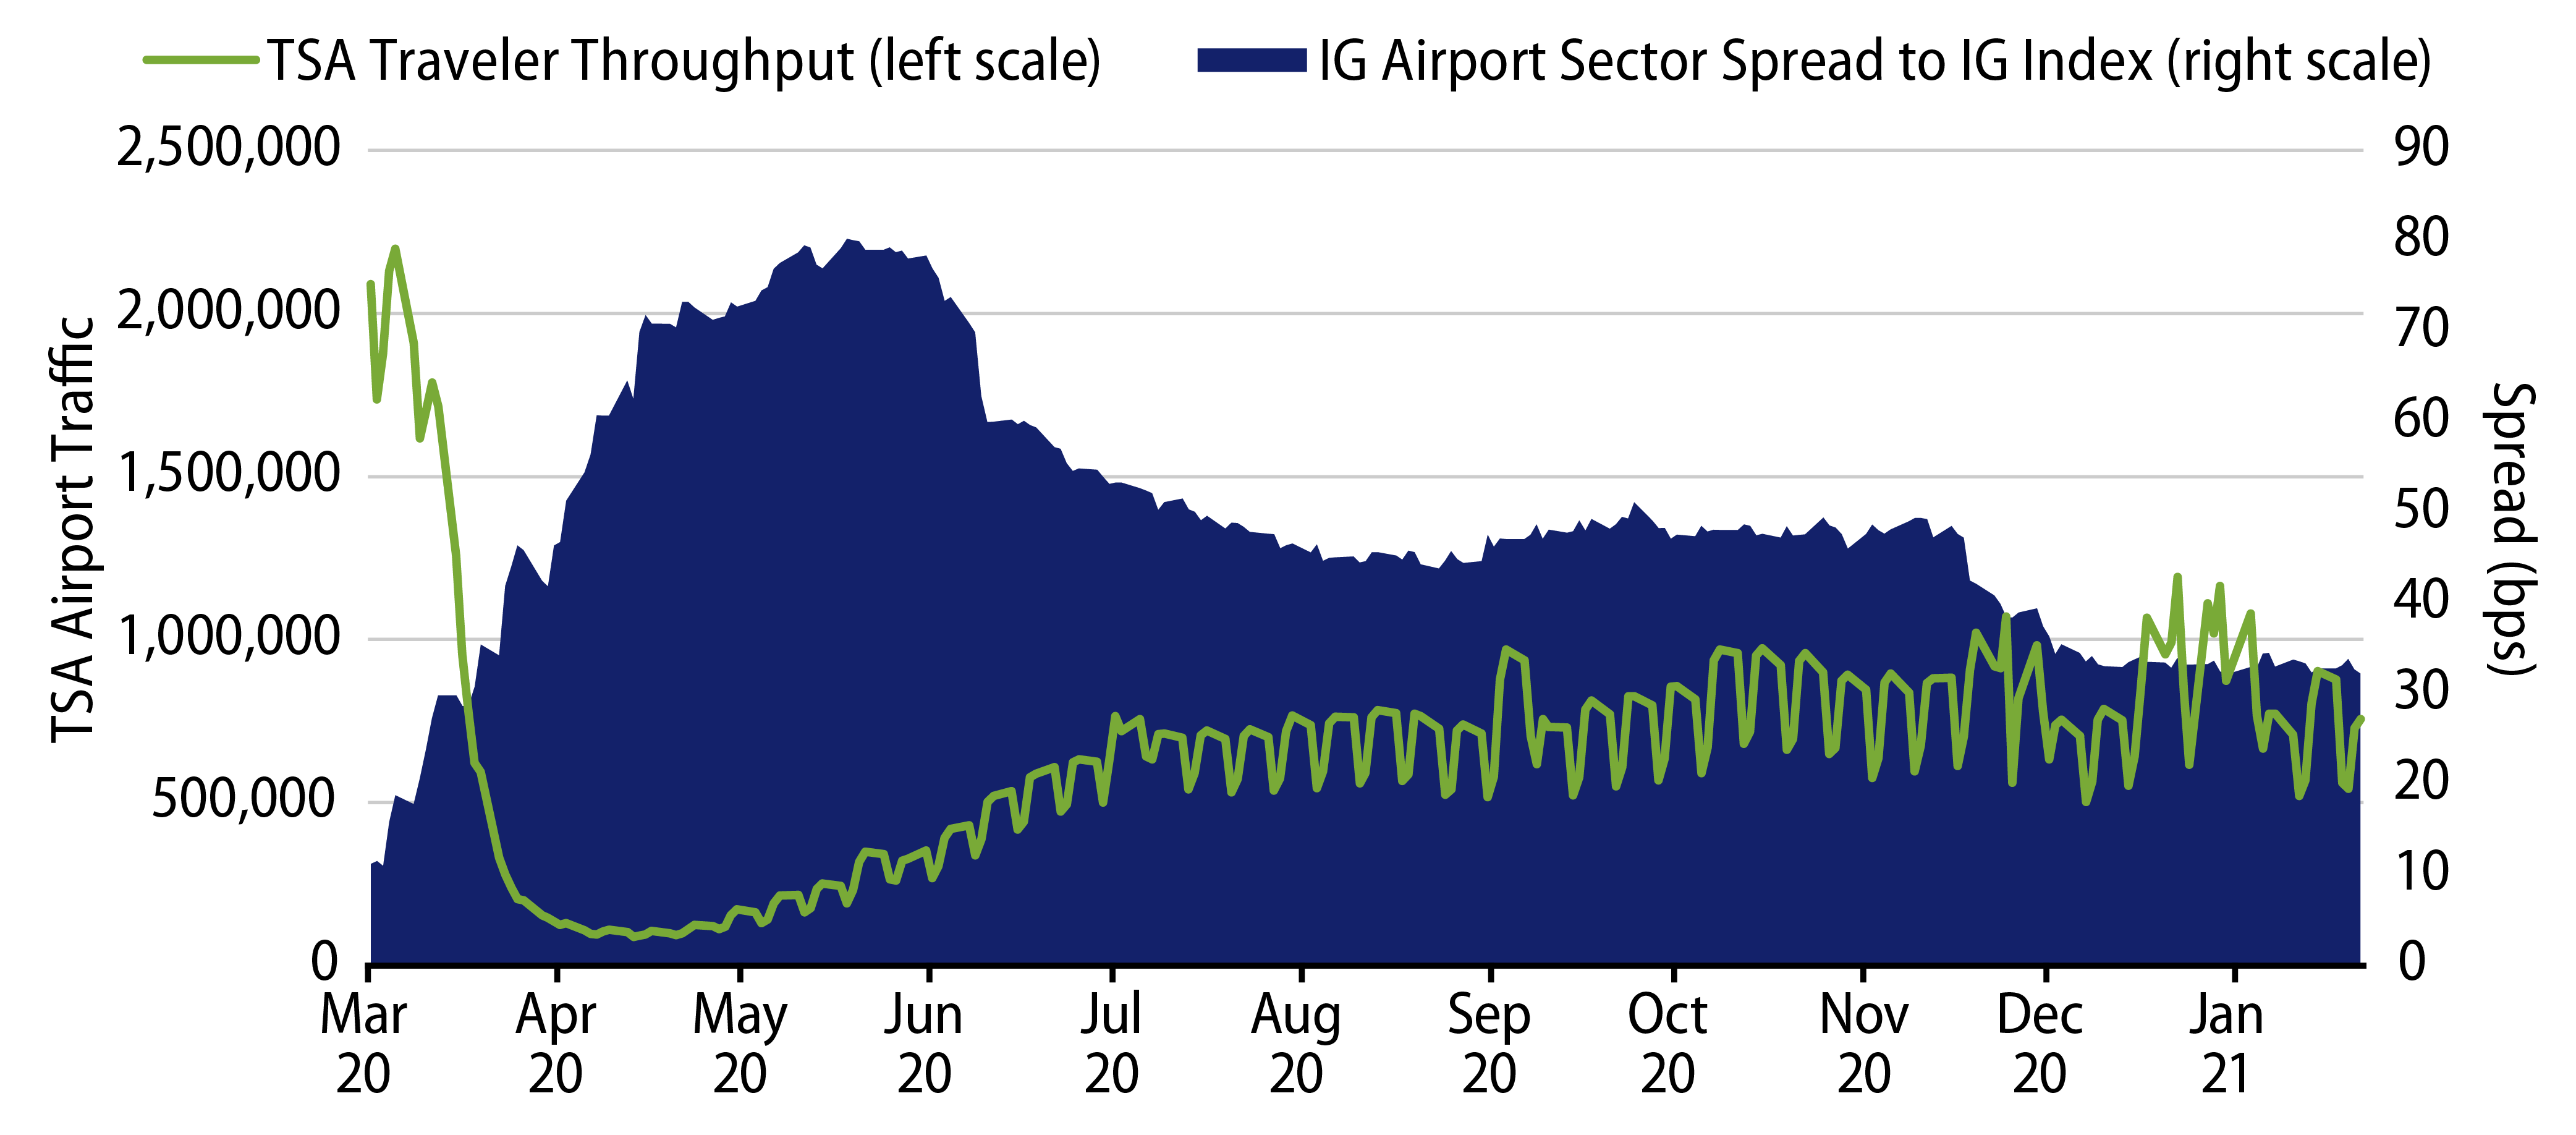 Explore TSA Throughput vs. Investment-Grade Airport Sector Spread to Bloomberg Muni Bond Index.